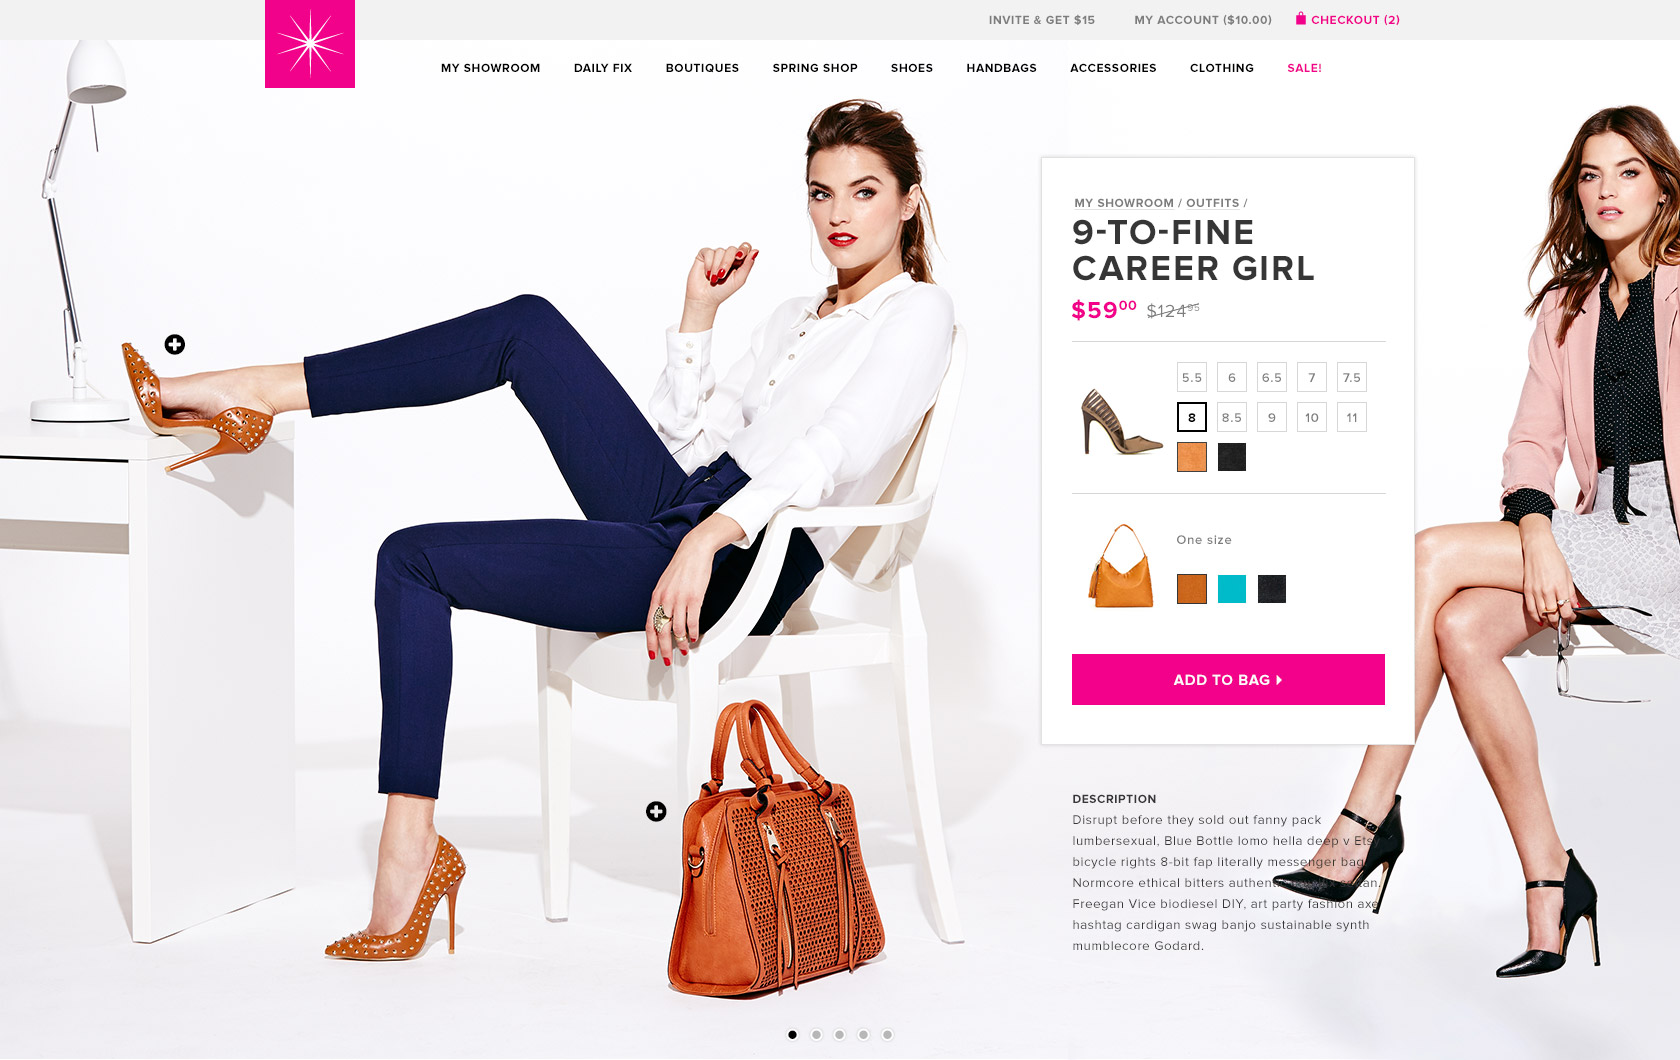 ShoeDazzle, product detail page